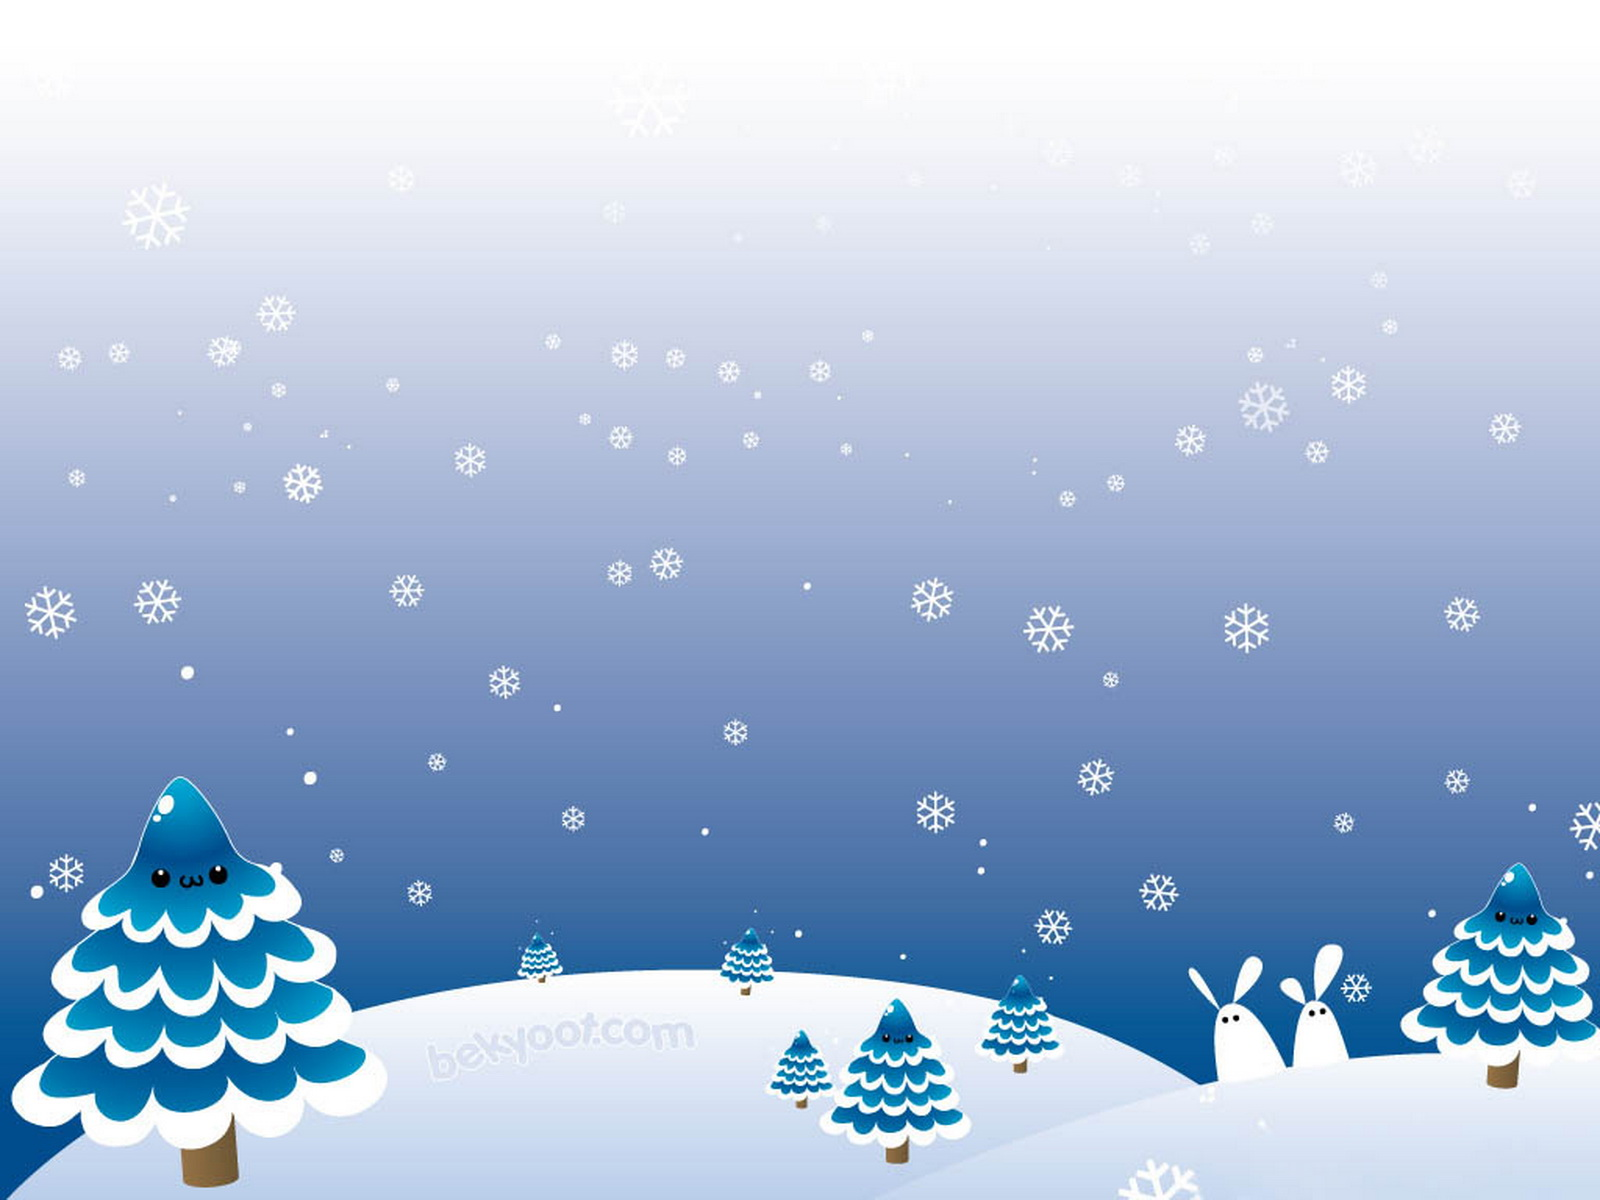 Animated Snow Falling Wallpaper Free Download Winter Holiday Wallpapers Pixelstalk Net